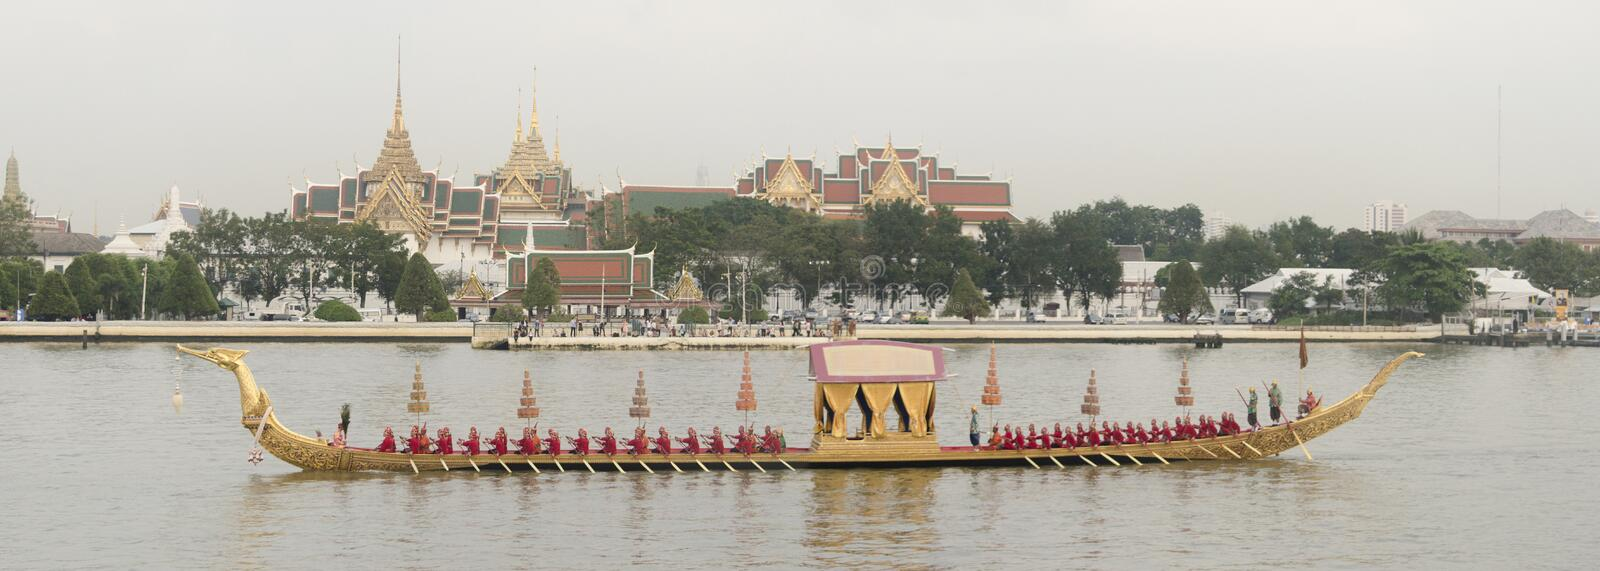 Download Thai Royal Barge In Bangkok Editorial Photography - Image: 33518487